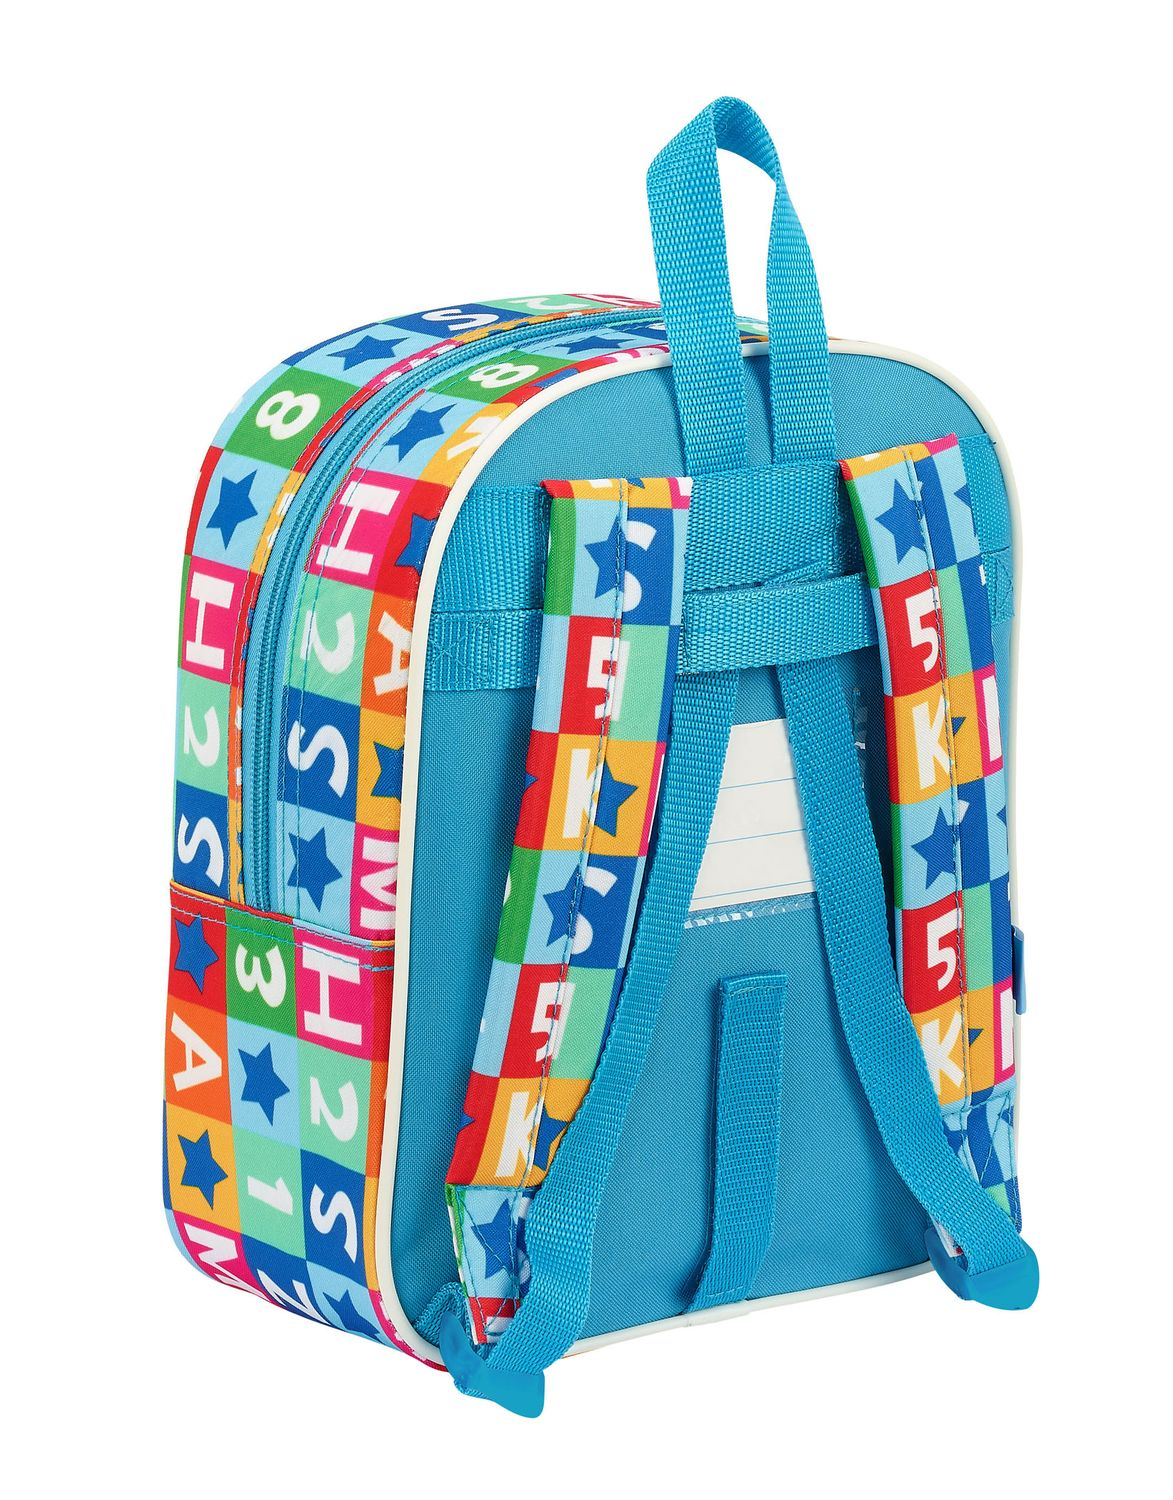 Yoko Junior Rucksack Backpack 27 cm  – image 2